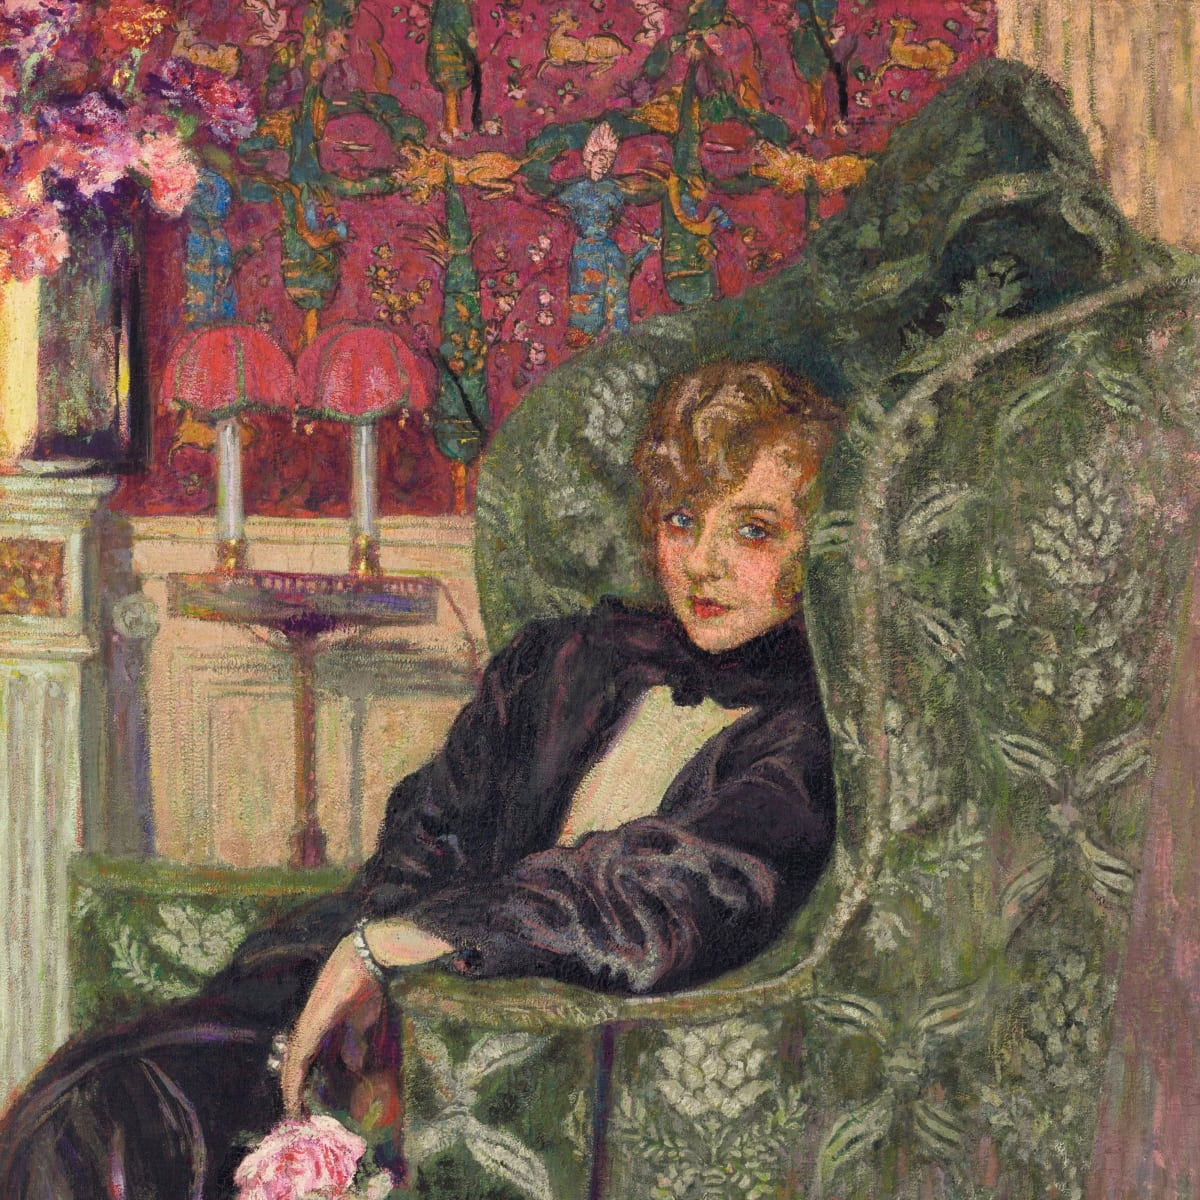 Edouard Vuillard_Yvonne Printemps in an Armchair, Bass art collection